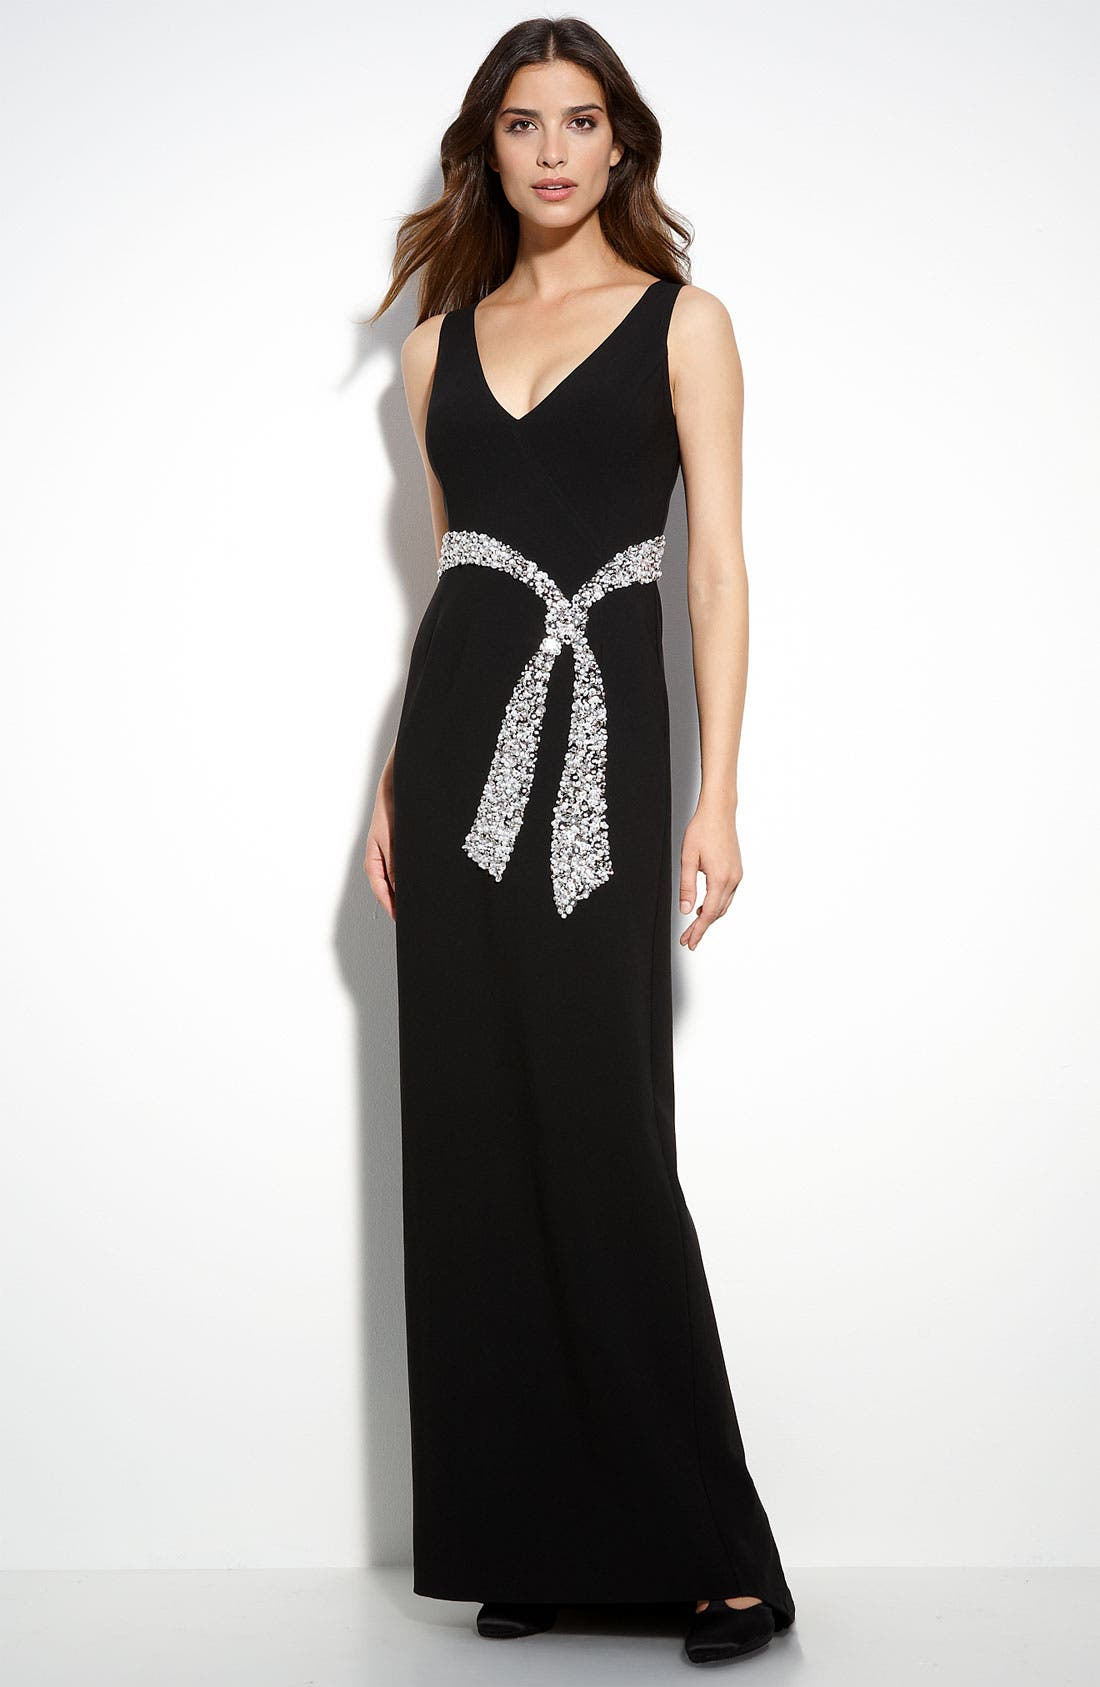 Main Image - St. John Collection Crepe Marocain Gown